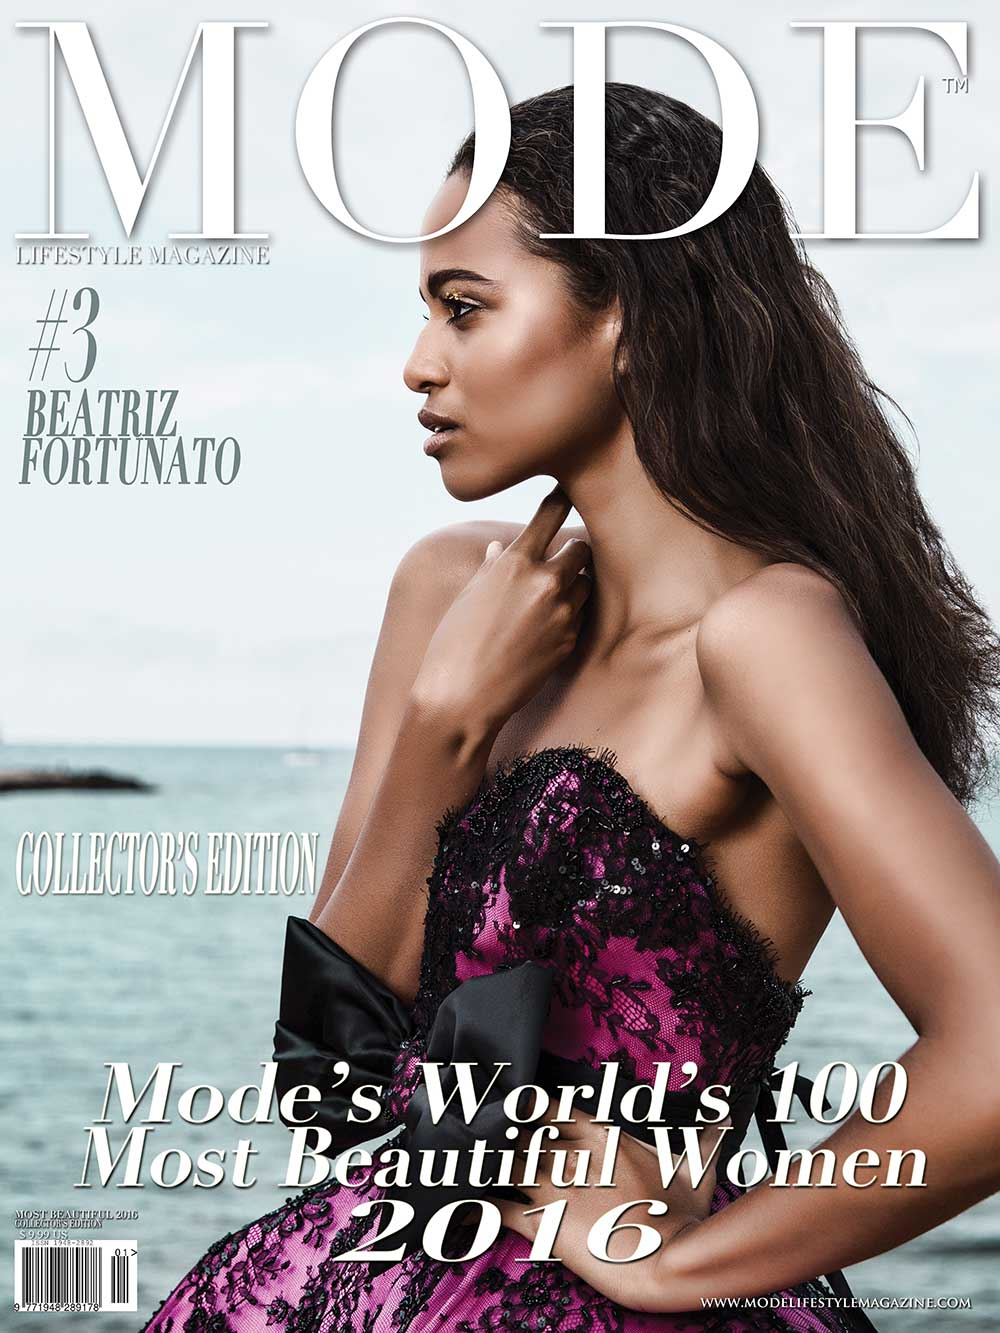 COVER - #3 Beatriz Fortunato - MODE'S WORLD'S 100 MOST BEAUTIFUL WOMEN 2016. Photo by John Honk